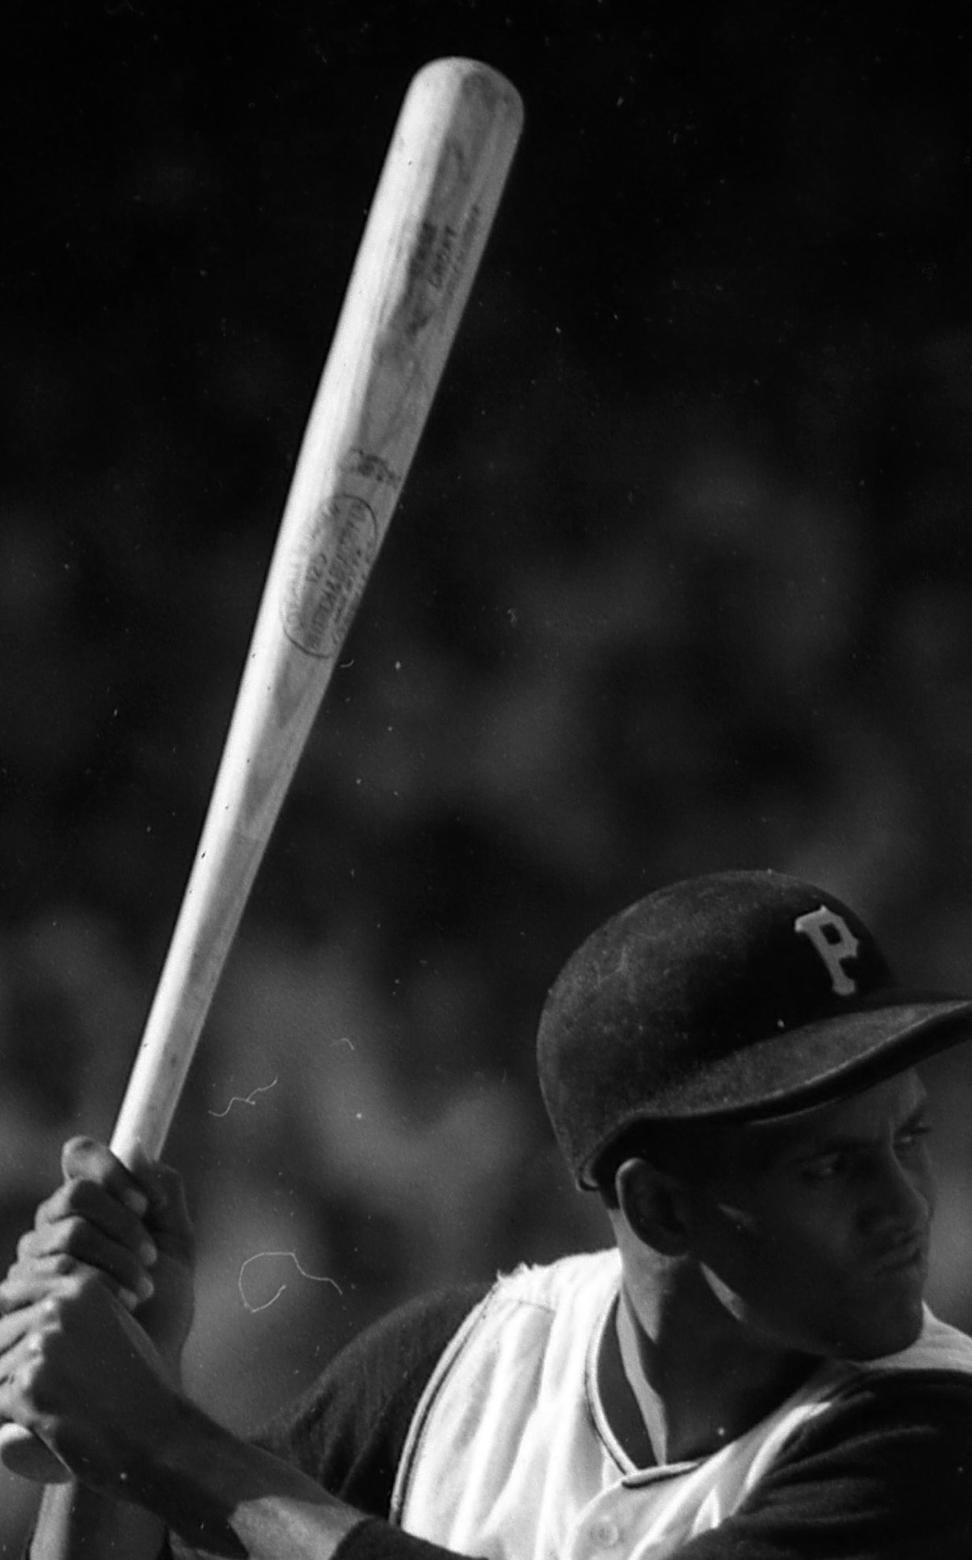 Name:  clemente batting stance awaiting pitch using groat bat cropped.jpg